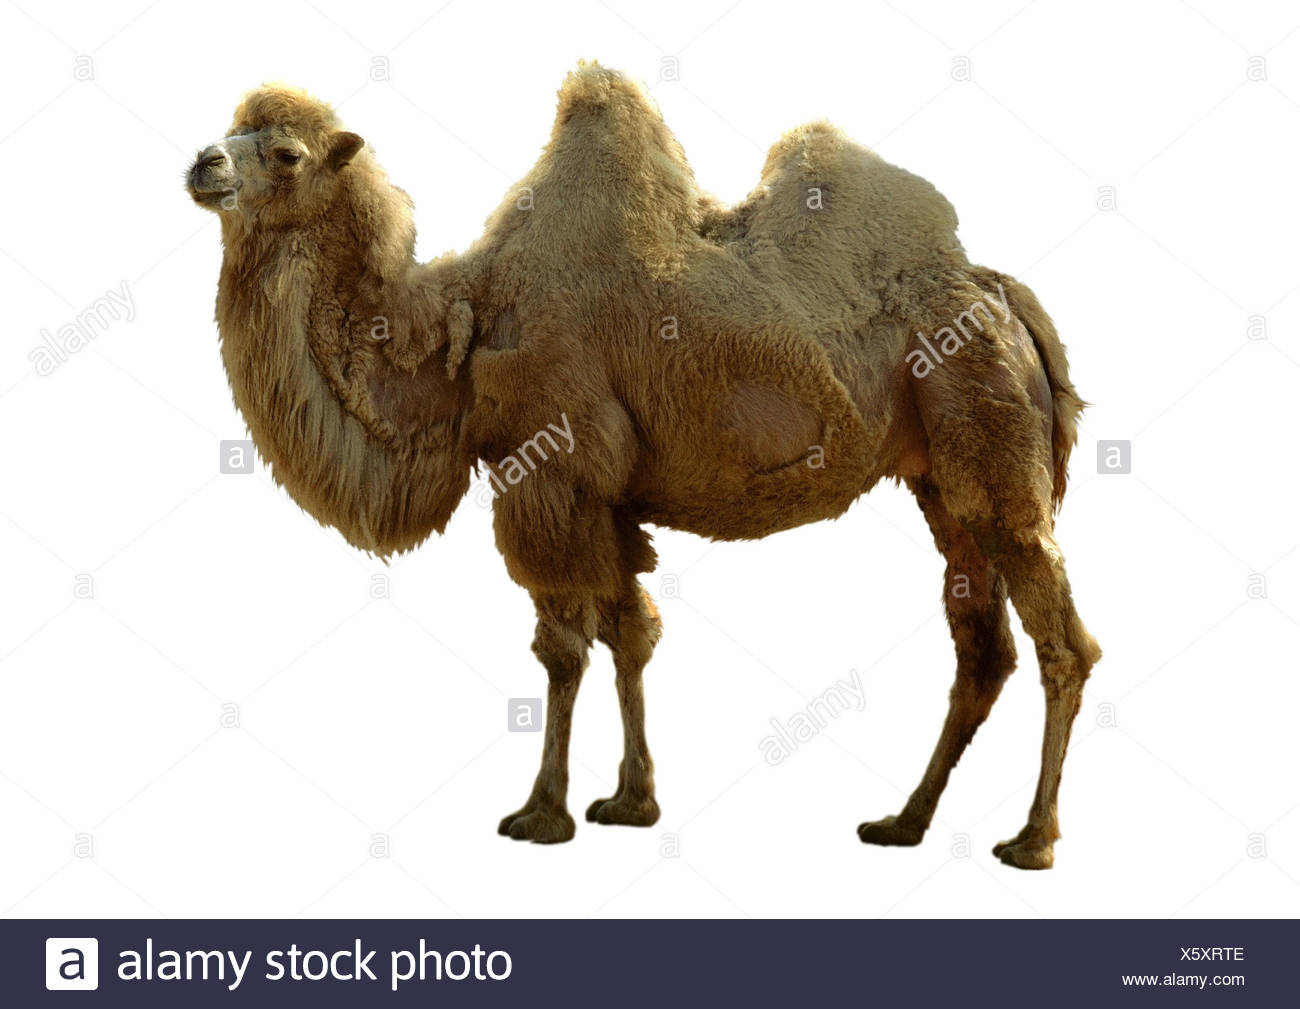 Bactrian camel, two-humped camel (Camelus bactrianus), cutted out - Stock Image